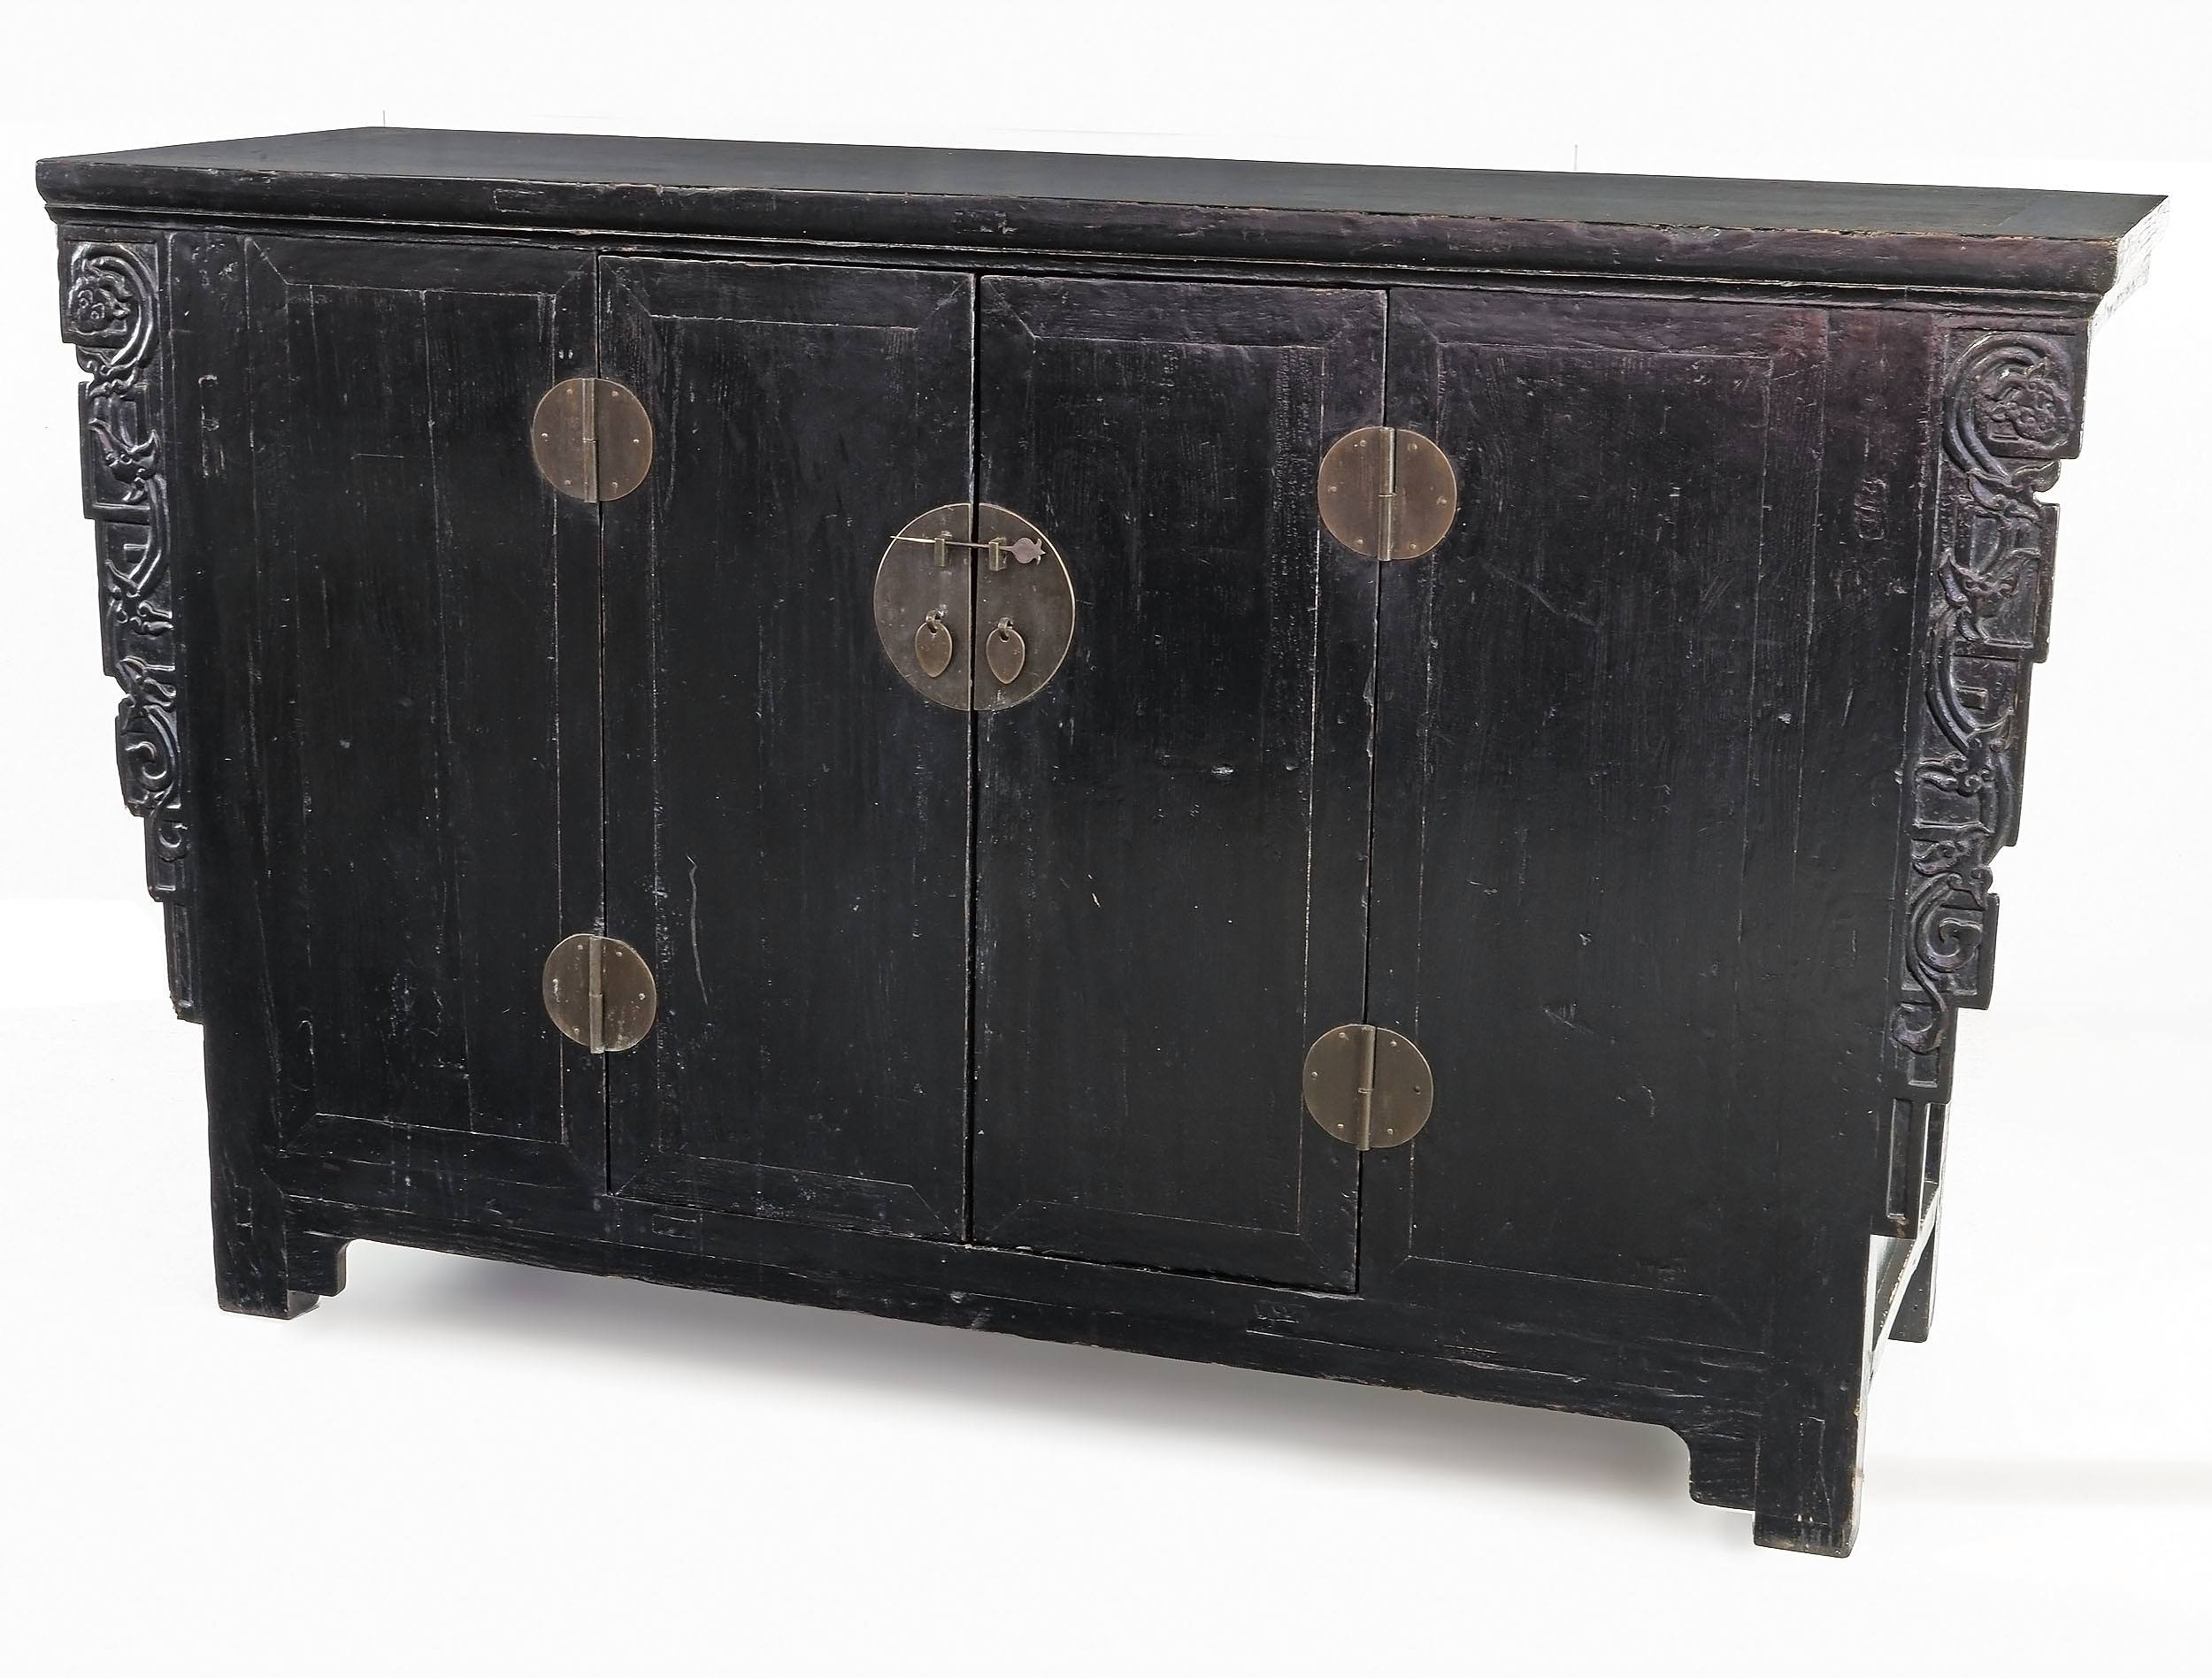 'Chinese Provincial Black Lacquer Northern Elm Cabinet, 19th Century'